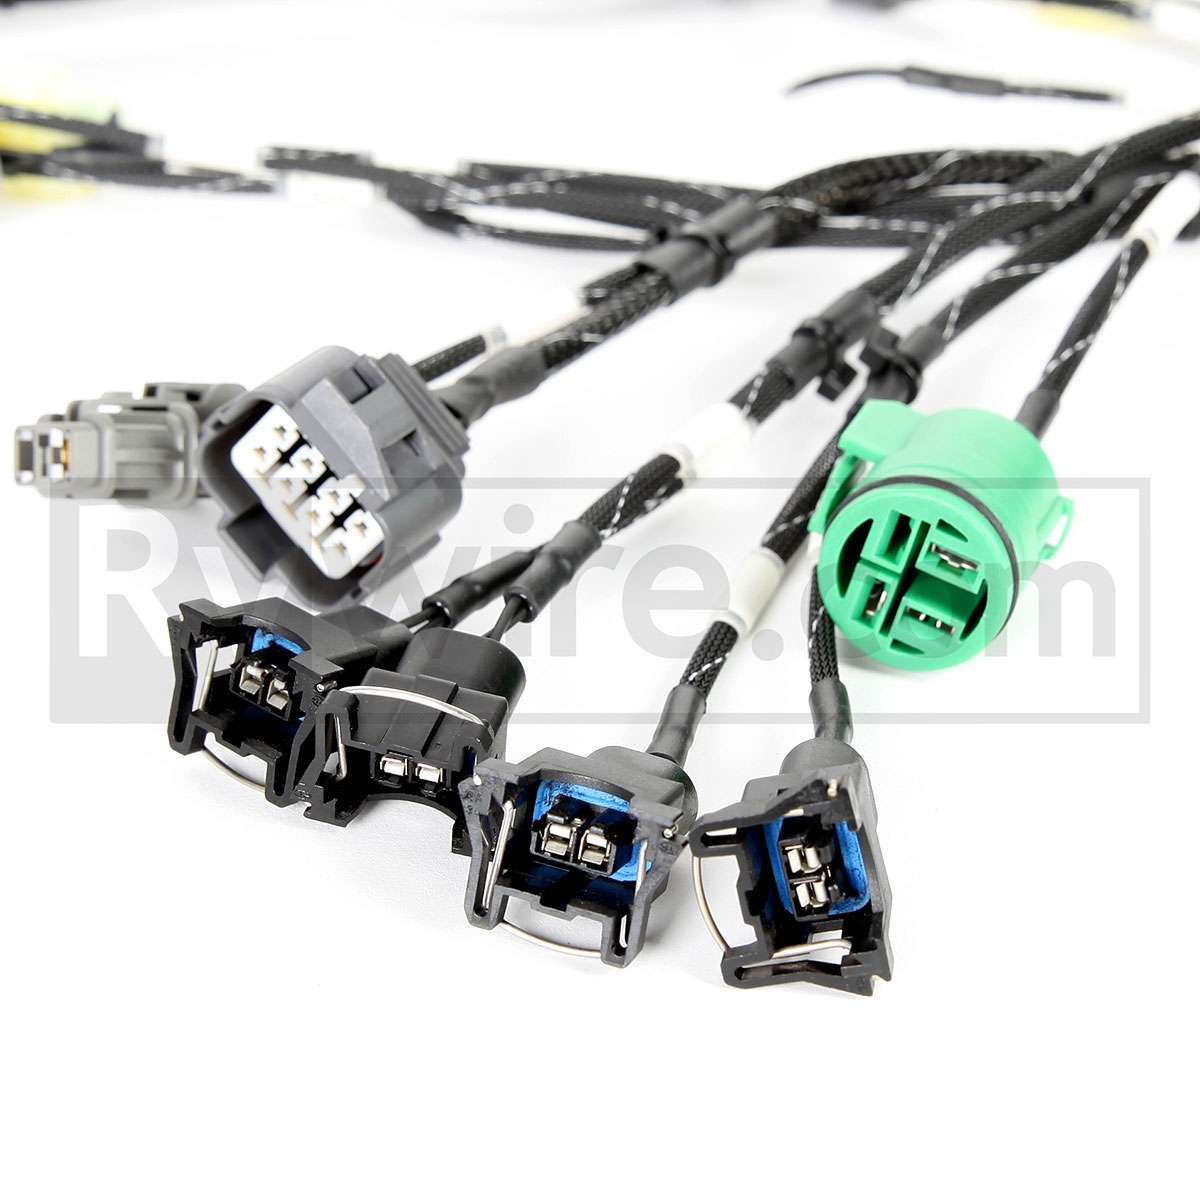 B1 Base 4?1403534211 rywire com budget d & b series tucked engine harness 99-00 civic si wiring harness at couponss.co